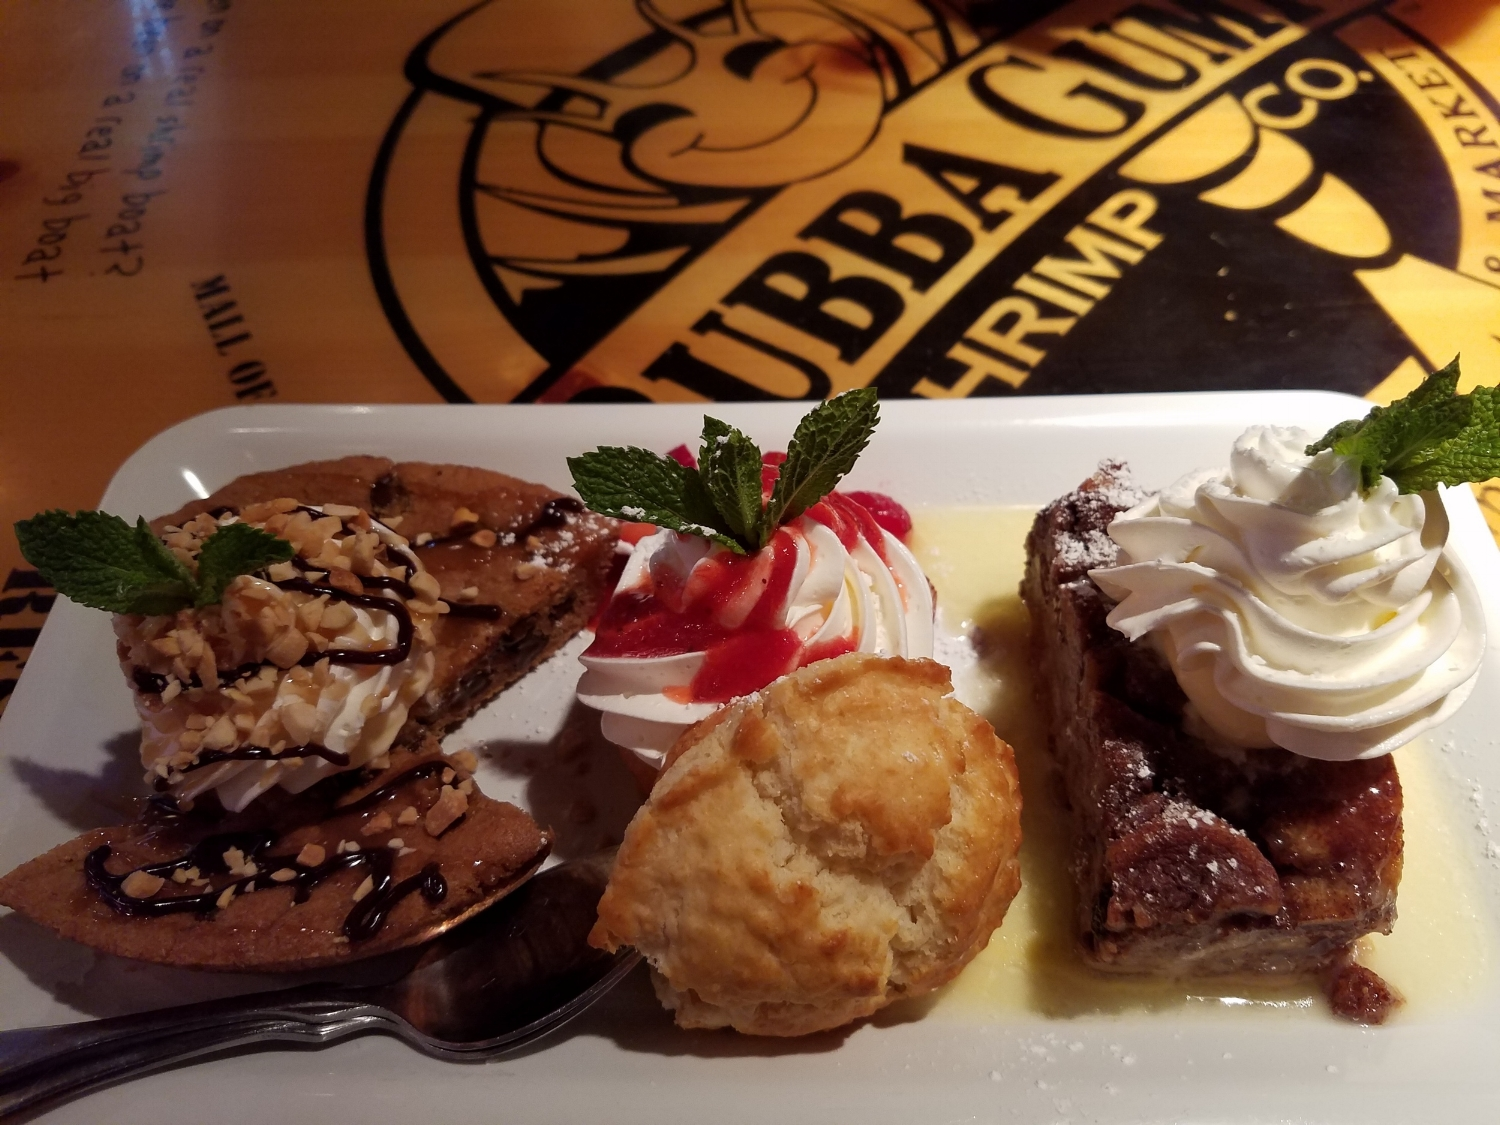 Hook, Line, and Sinker Dessert Sampler at Bubba Gump